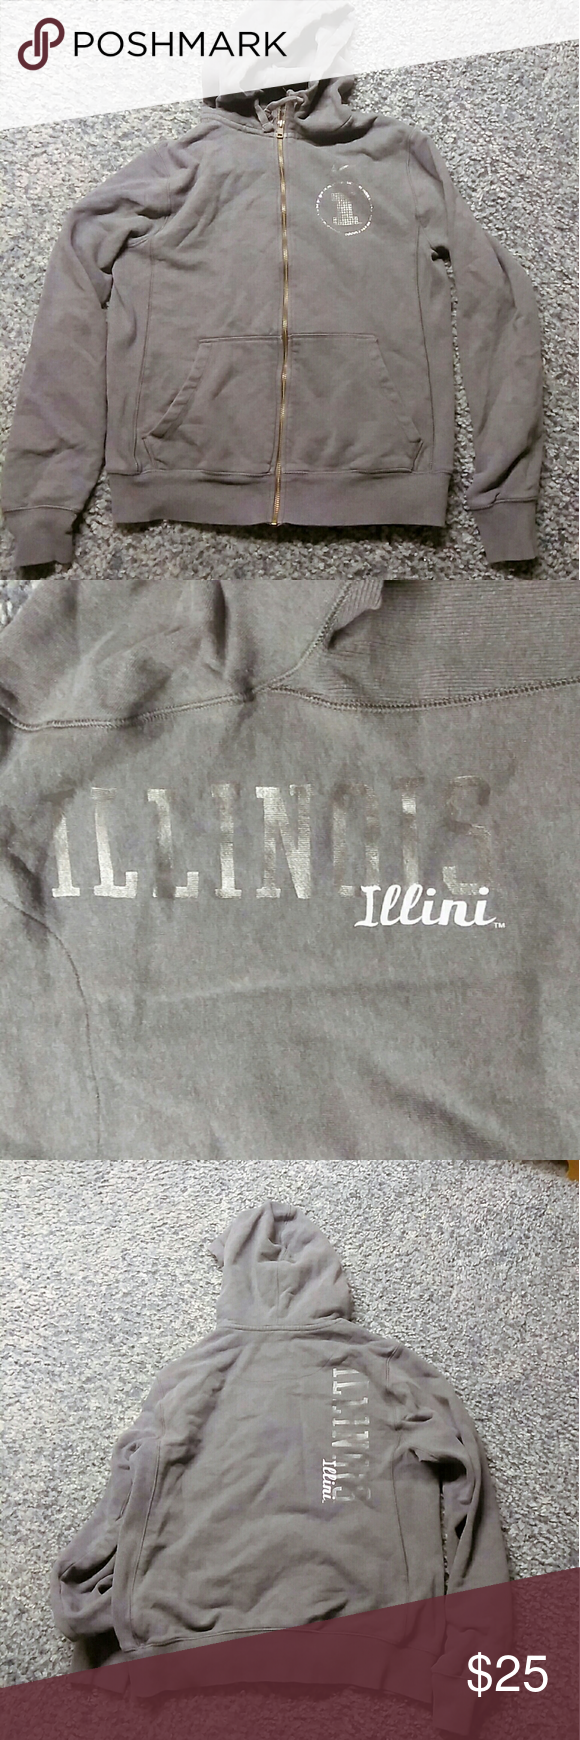 Nike Illini Illinois Large Hoodie Sweatshirt Gray Good Used Hoodie Missing A Couple Blings On Circle Still Lo Grey Sweatshirt Sweatshirts Hoodie Clothes Design [ 1740 x 580 Pixel ]